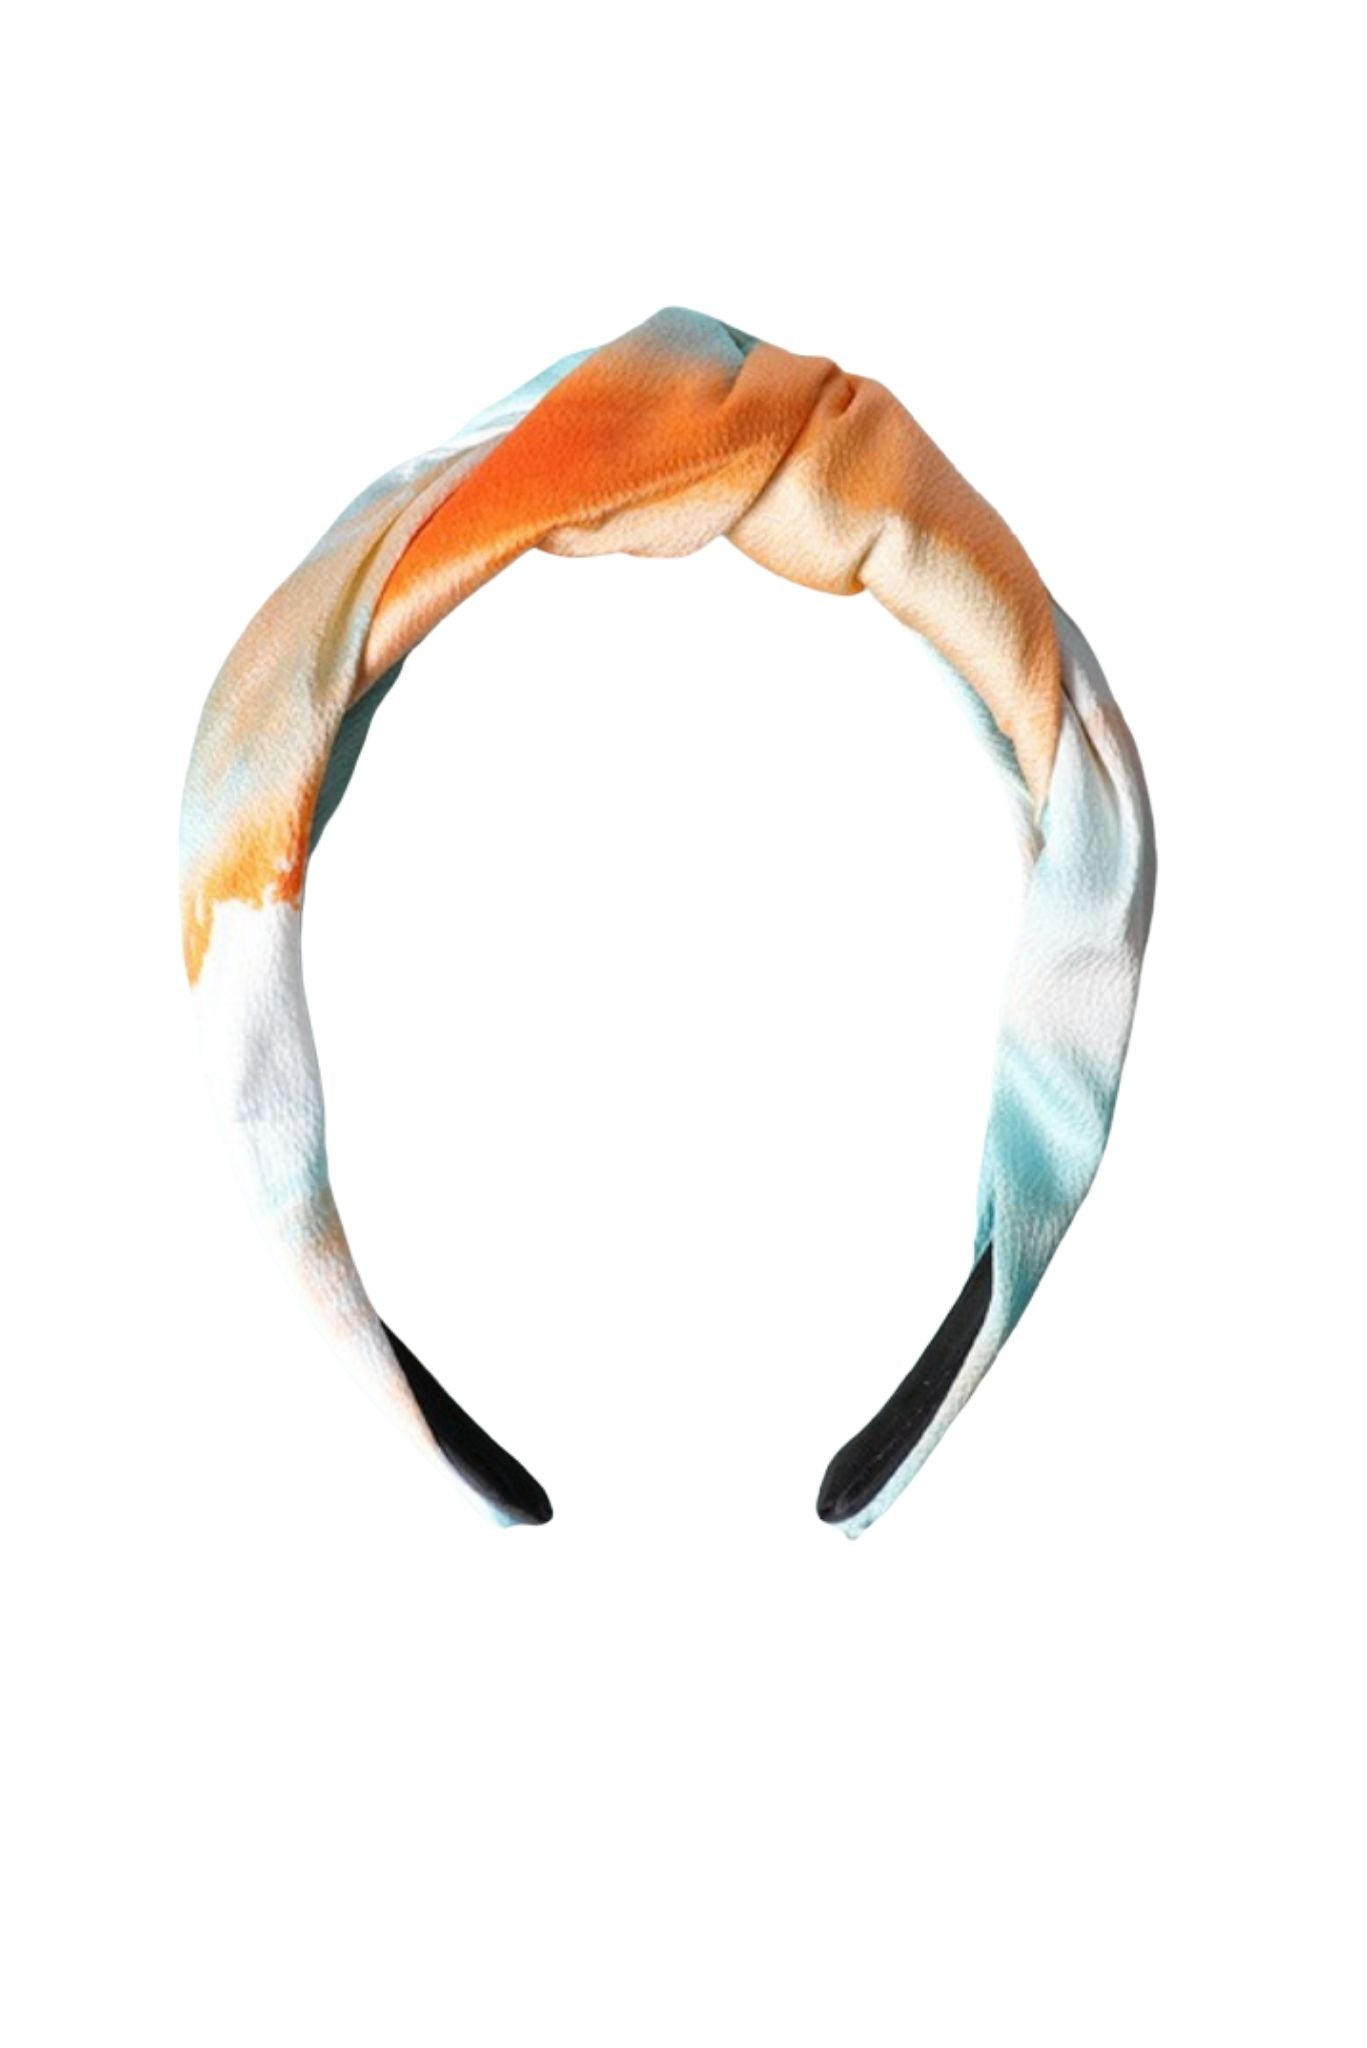 Orange and Teal Tie Dye Headband